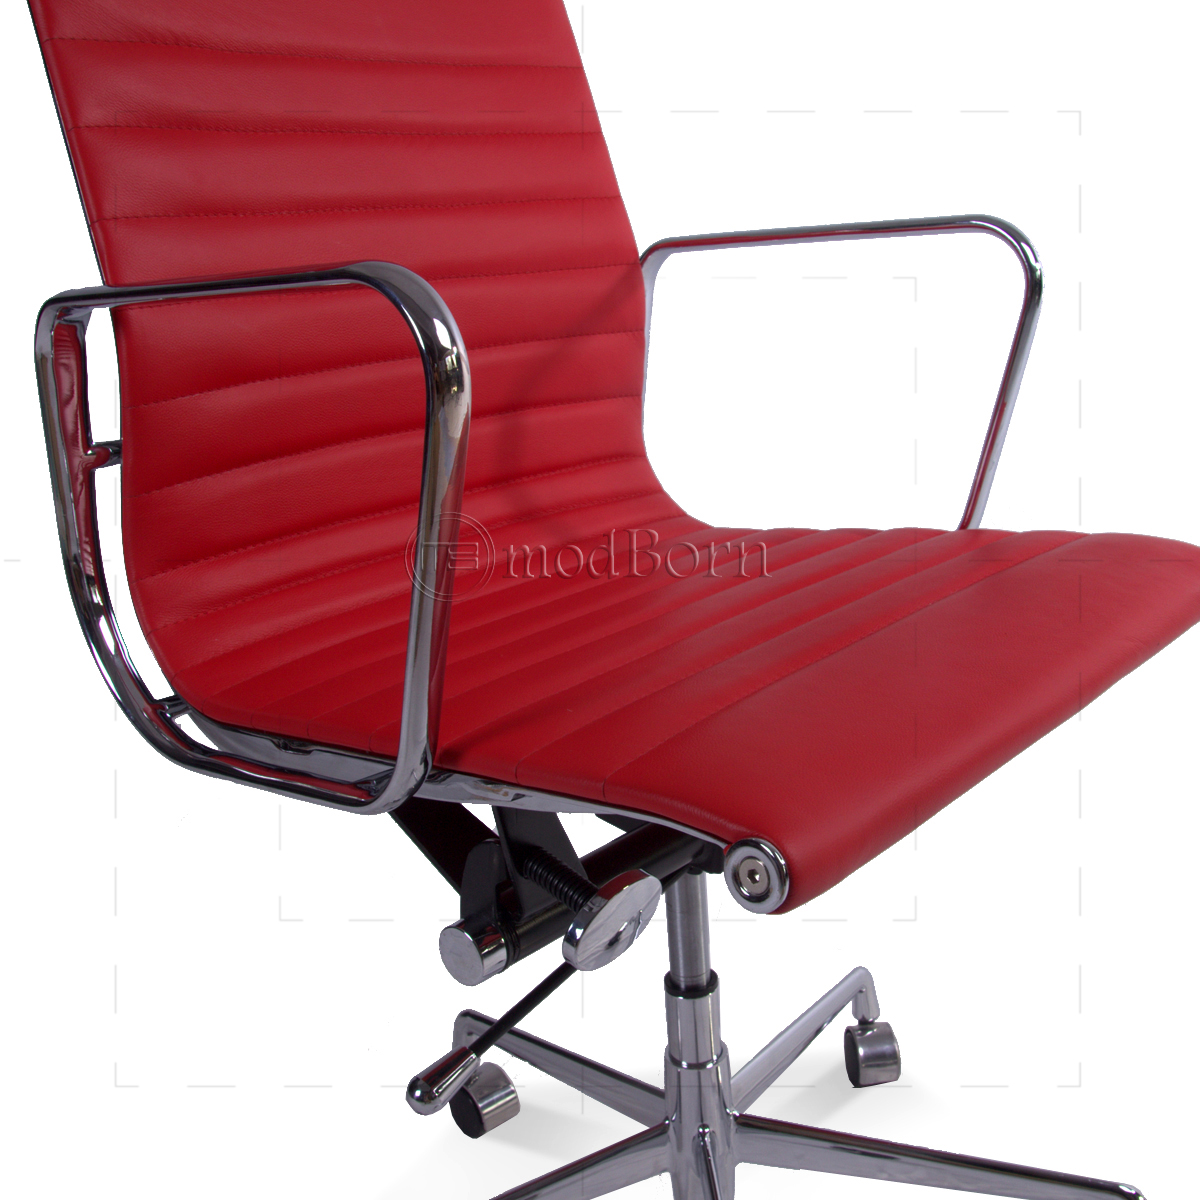 ea117 eames style office chair low back ribbed red leather bedroomsweet eames office chair replicas style